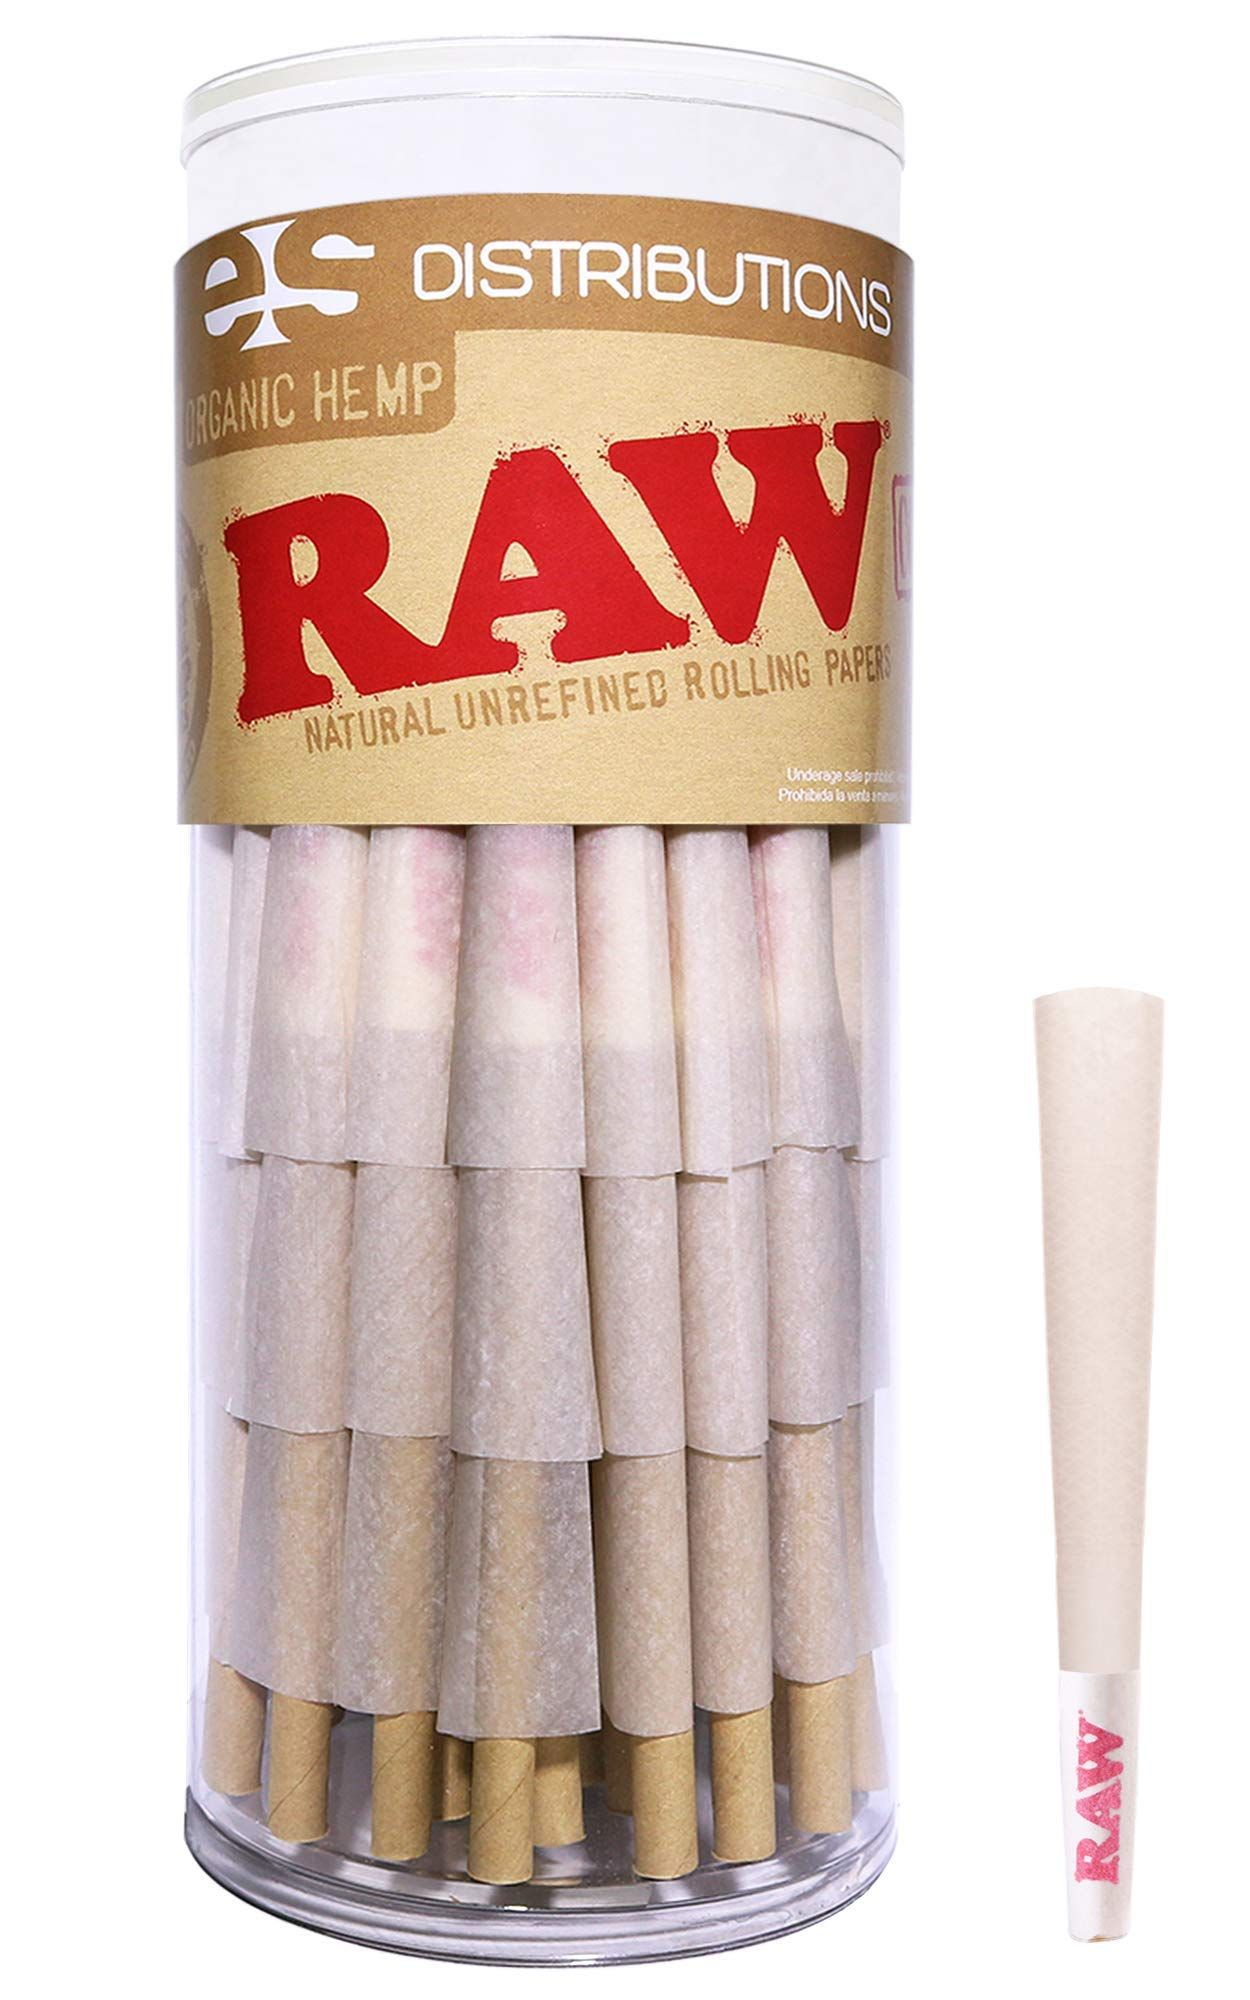 Can You Get High From Smoking Paper Shop Buy Me Now Shop Rolling Paper Raw Papers Pure Products